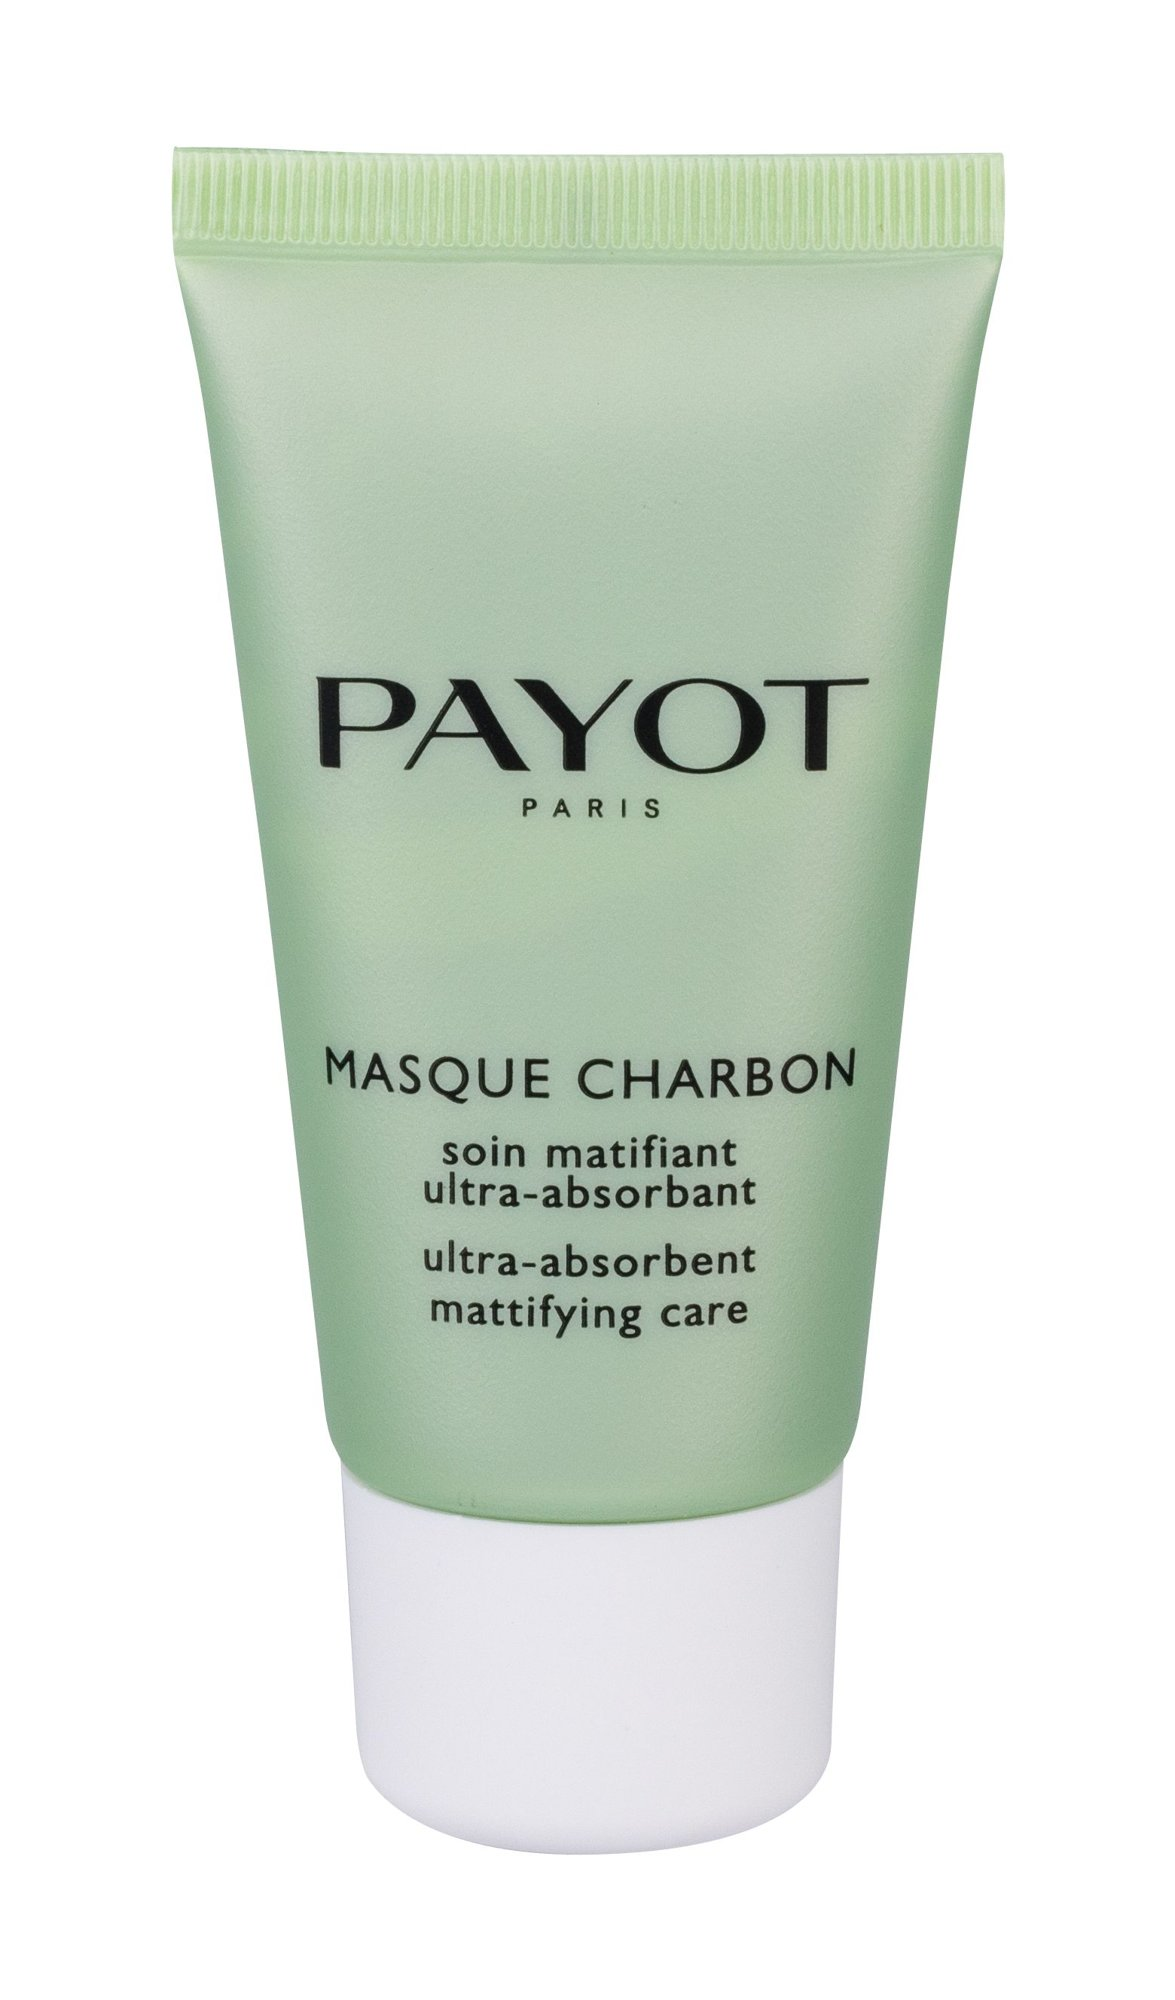 PAYOT Pate Grise Face Mask 50ml